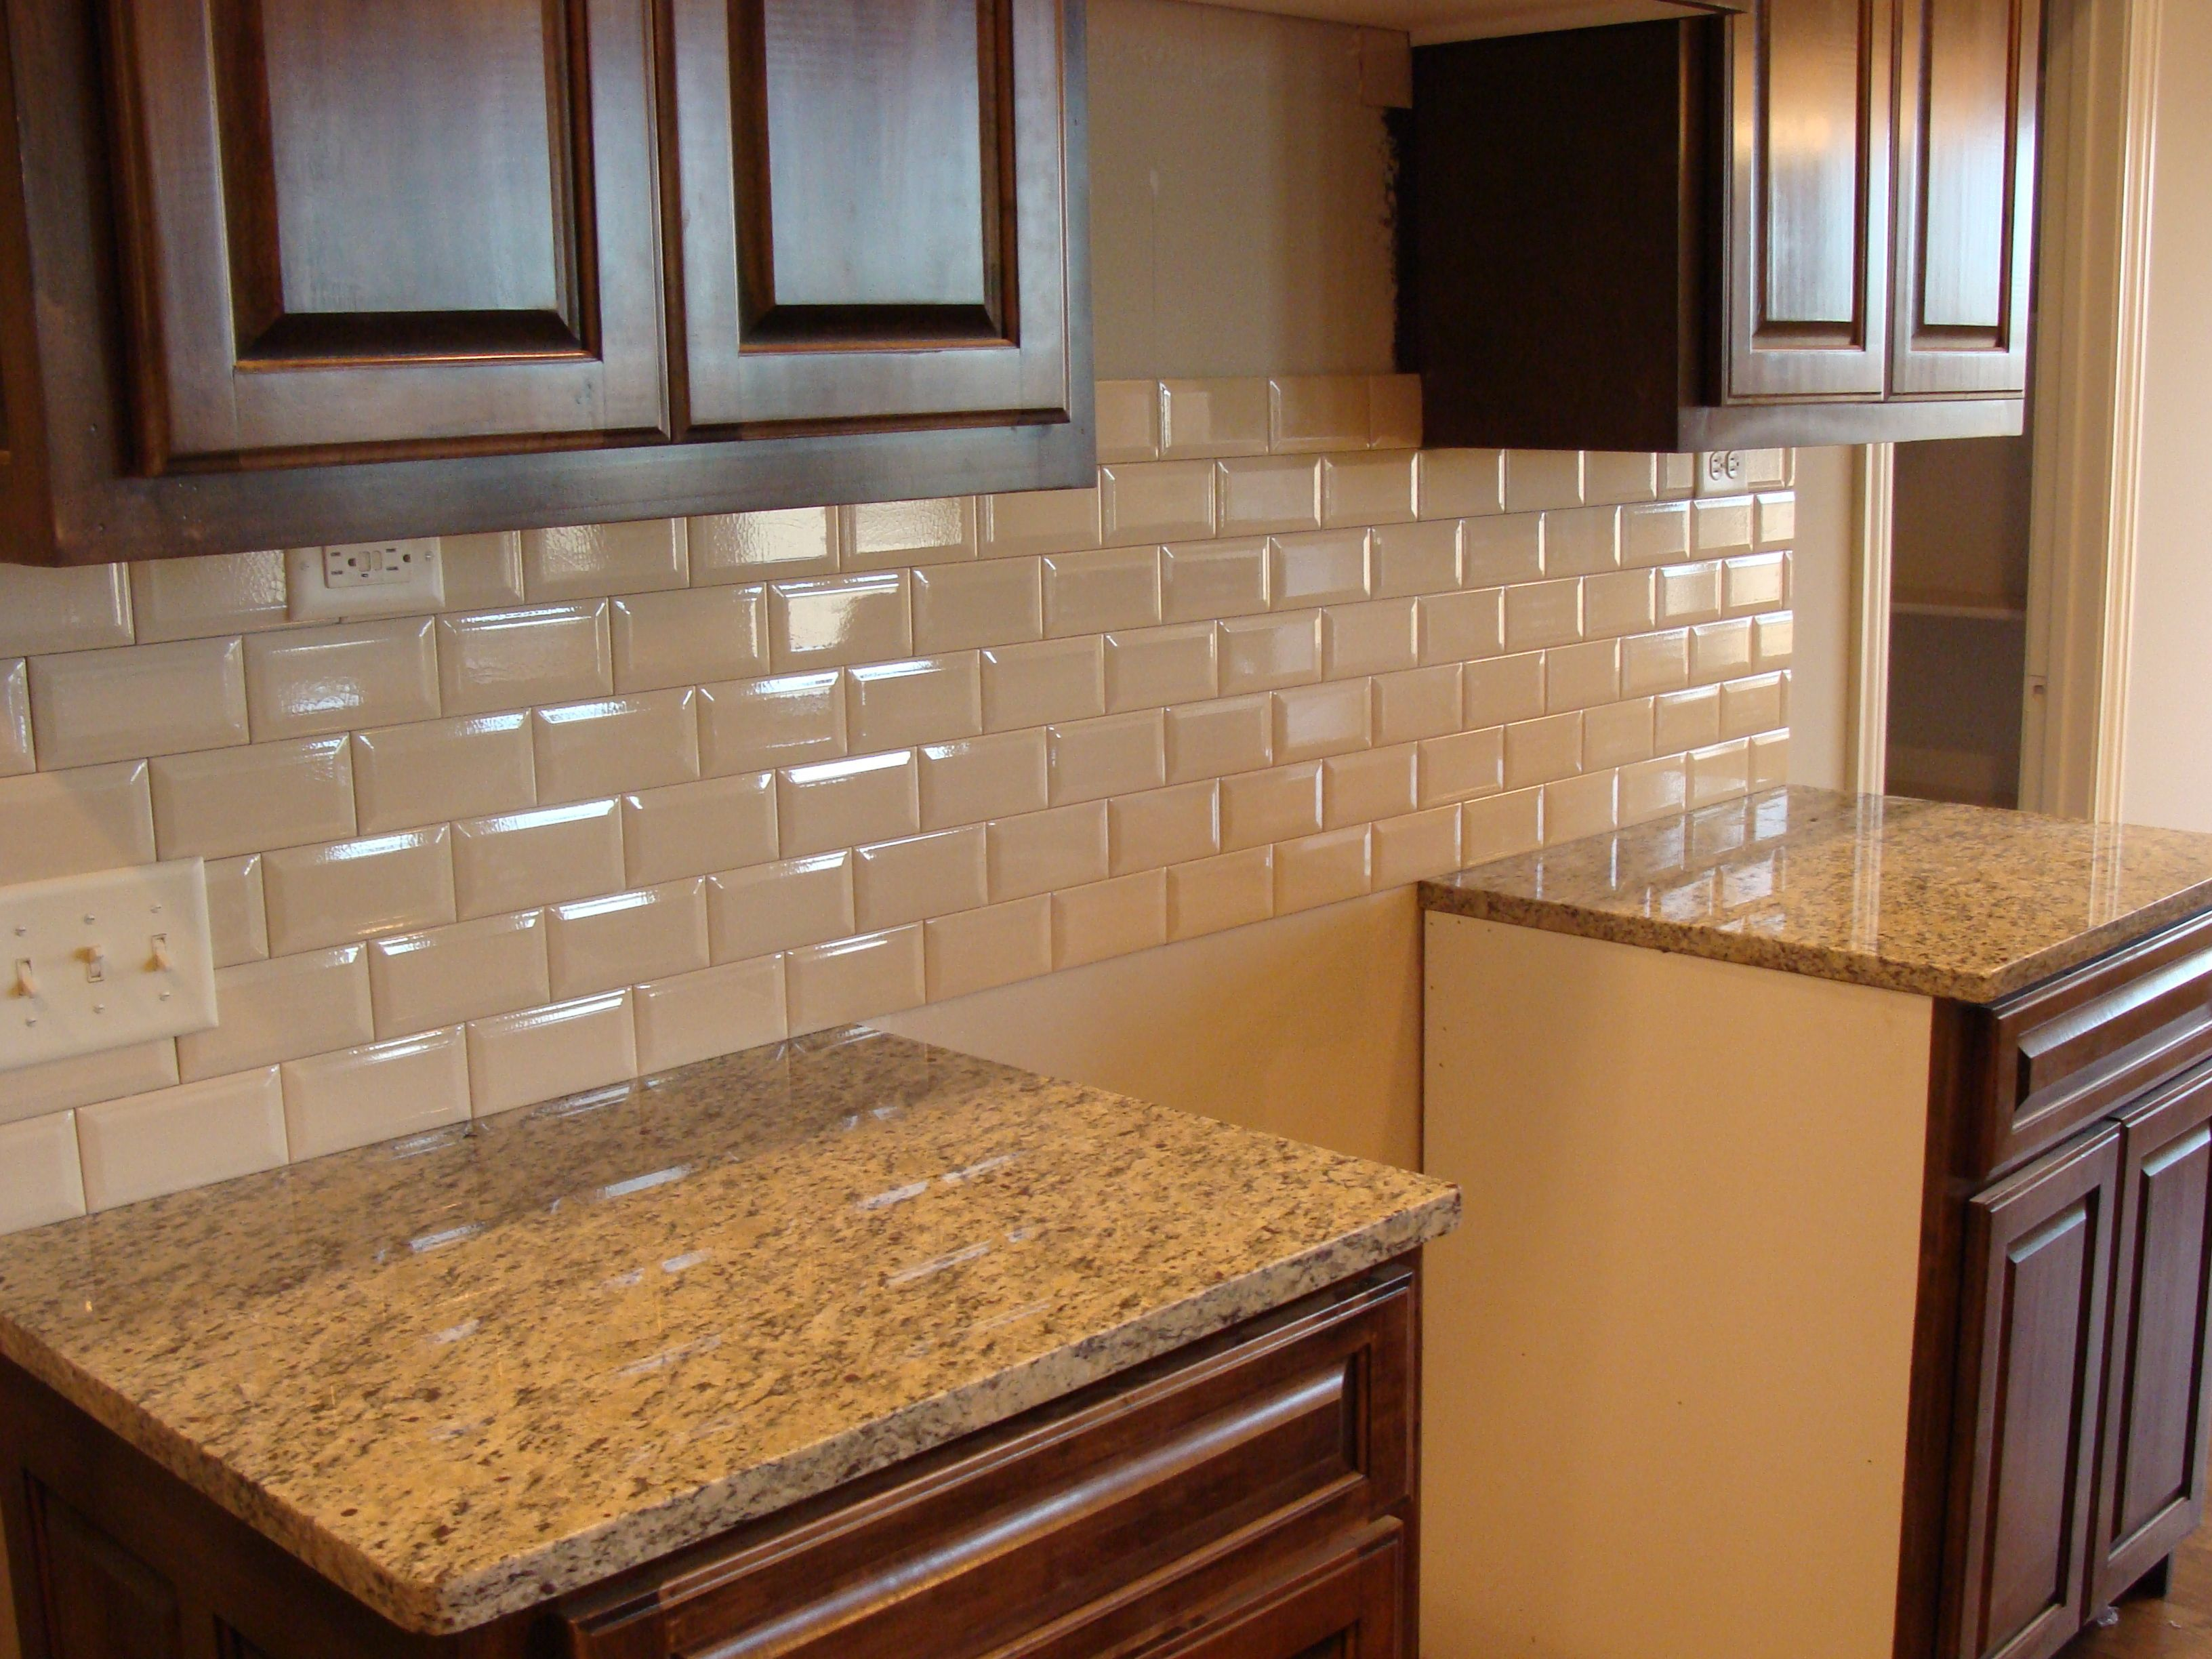 - Image Result For Glass Cream Subway Tile Brown Cabinets Beveled